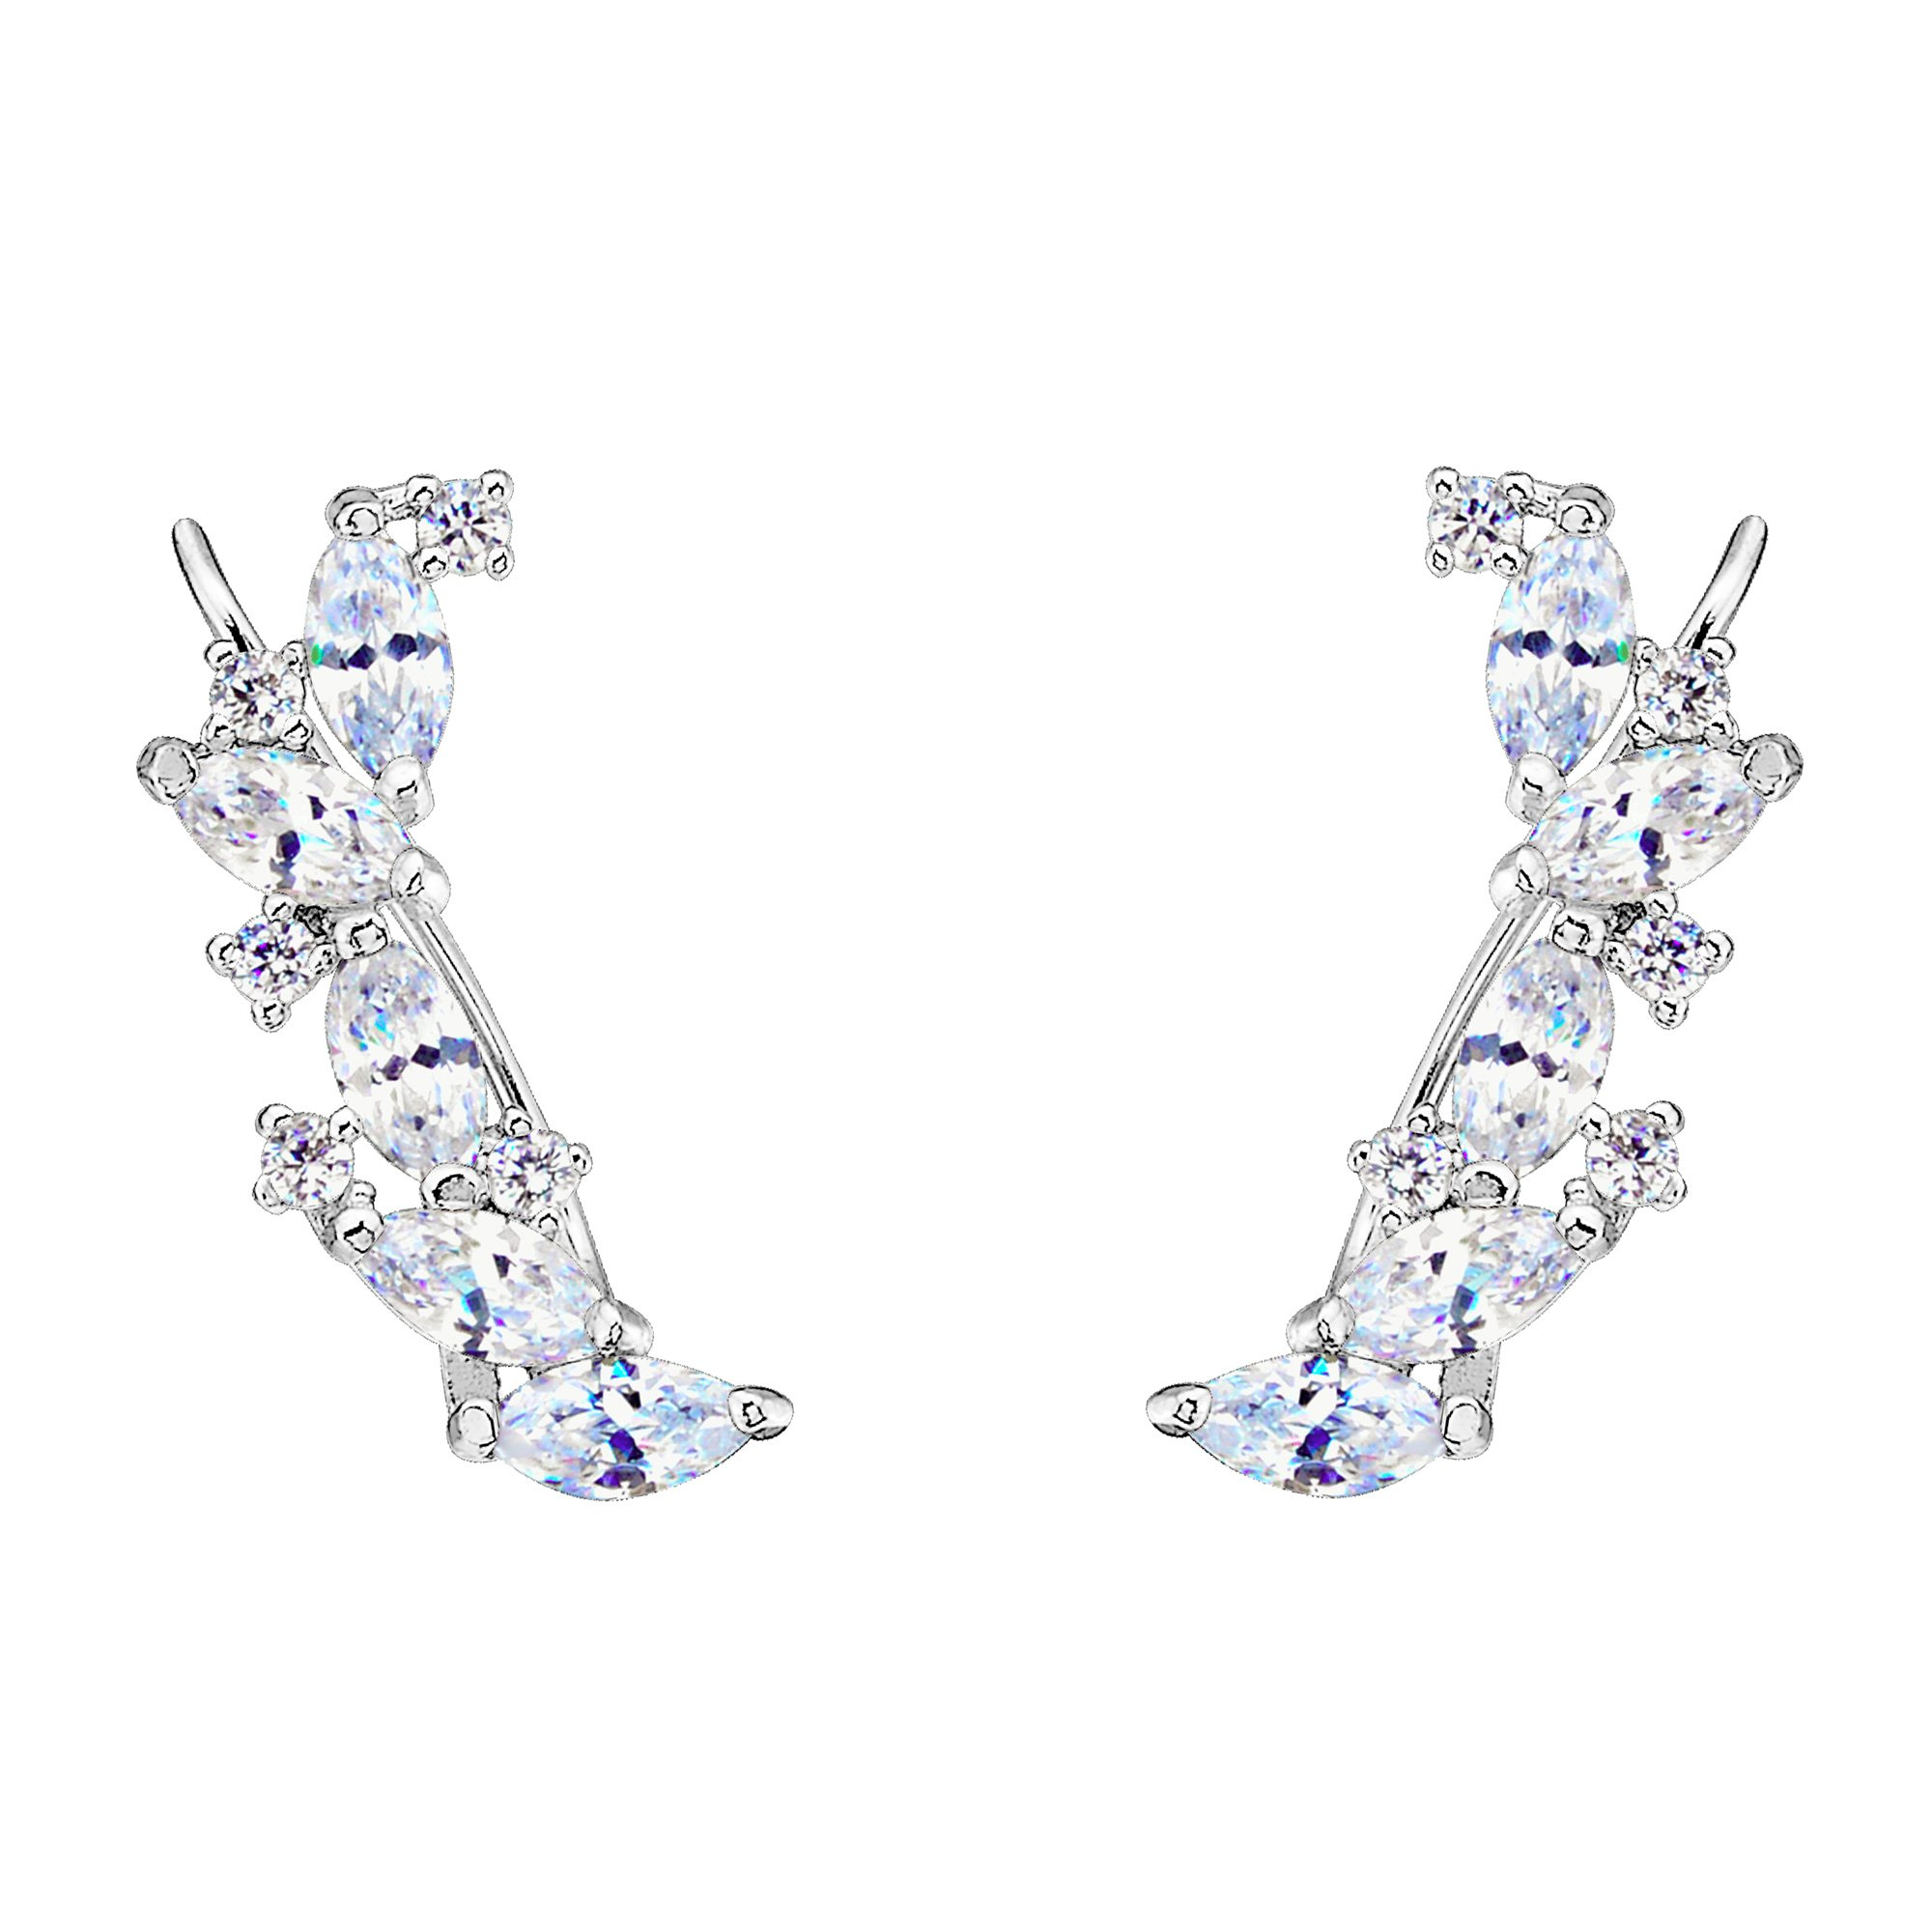 EVER FAITH 925 Sterling Silver Cubic Zirconia Elegant Ear Cuff Wire Wrap Sweep Hook Earrings Clear 1 Pair by EVER FAITH